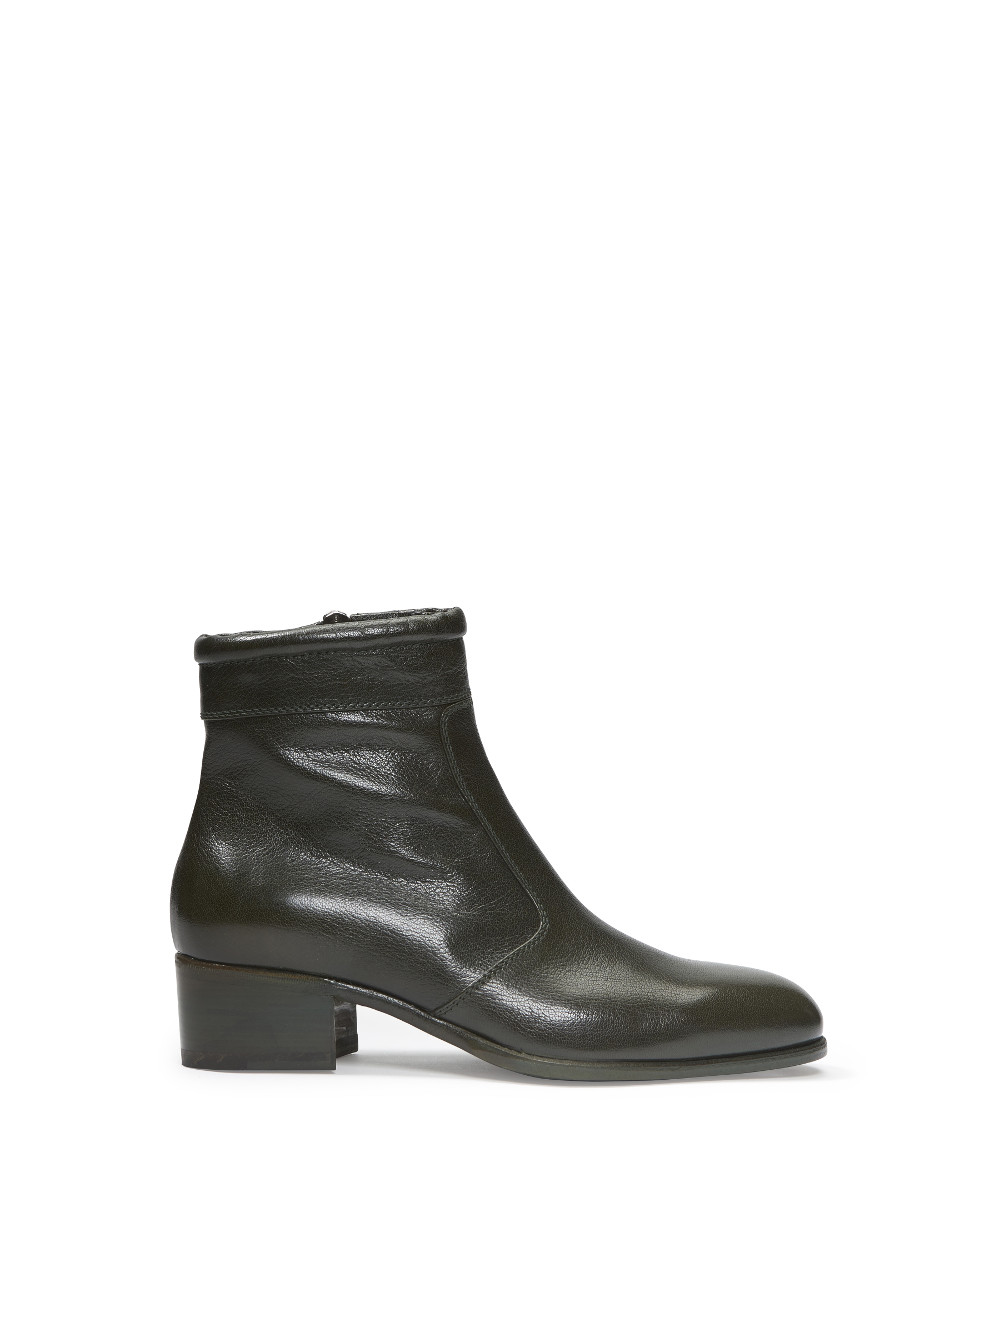 Bottines Max - Laurence Dacade